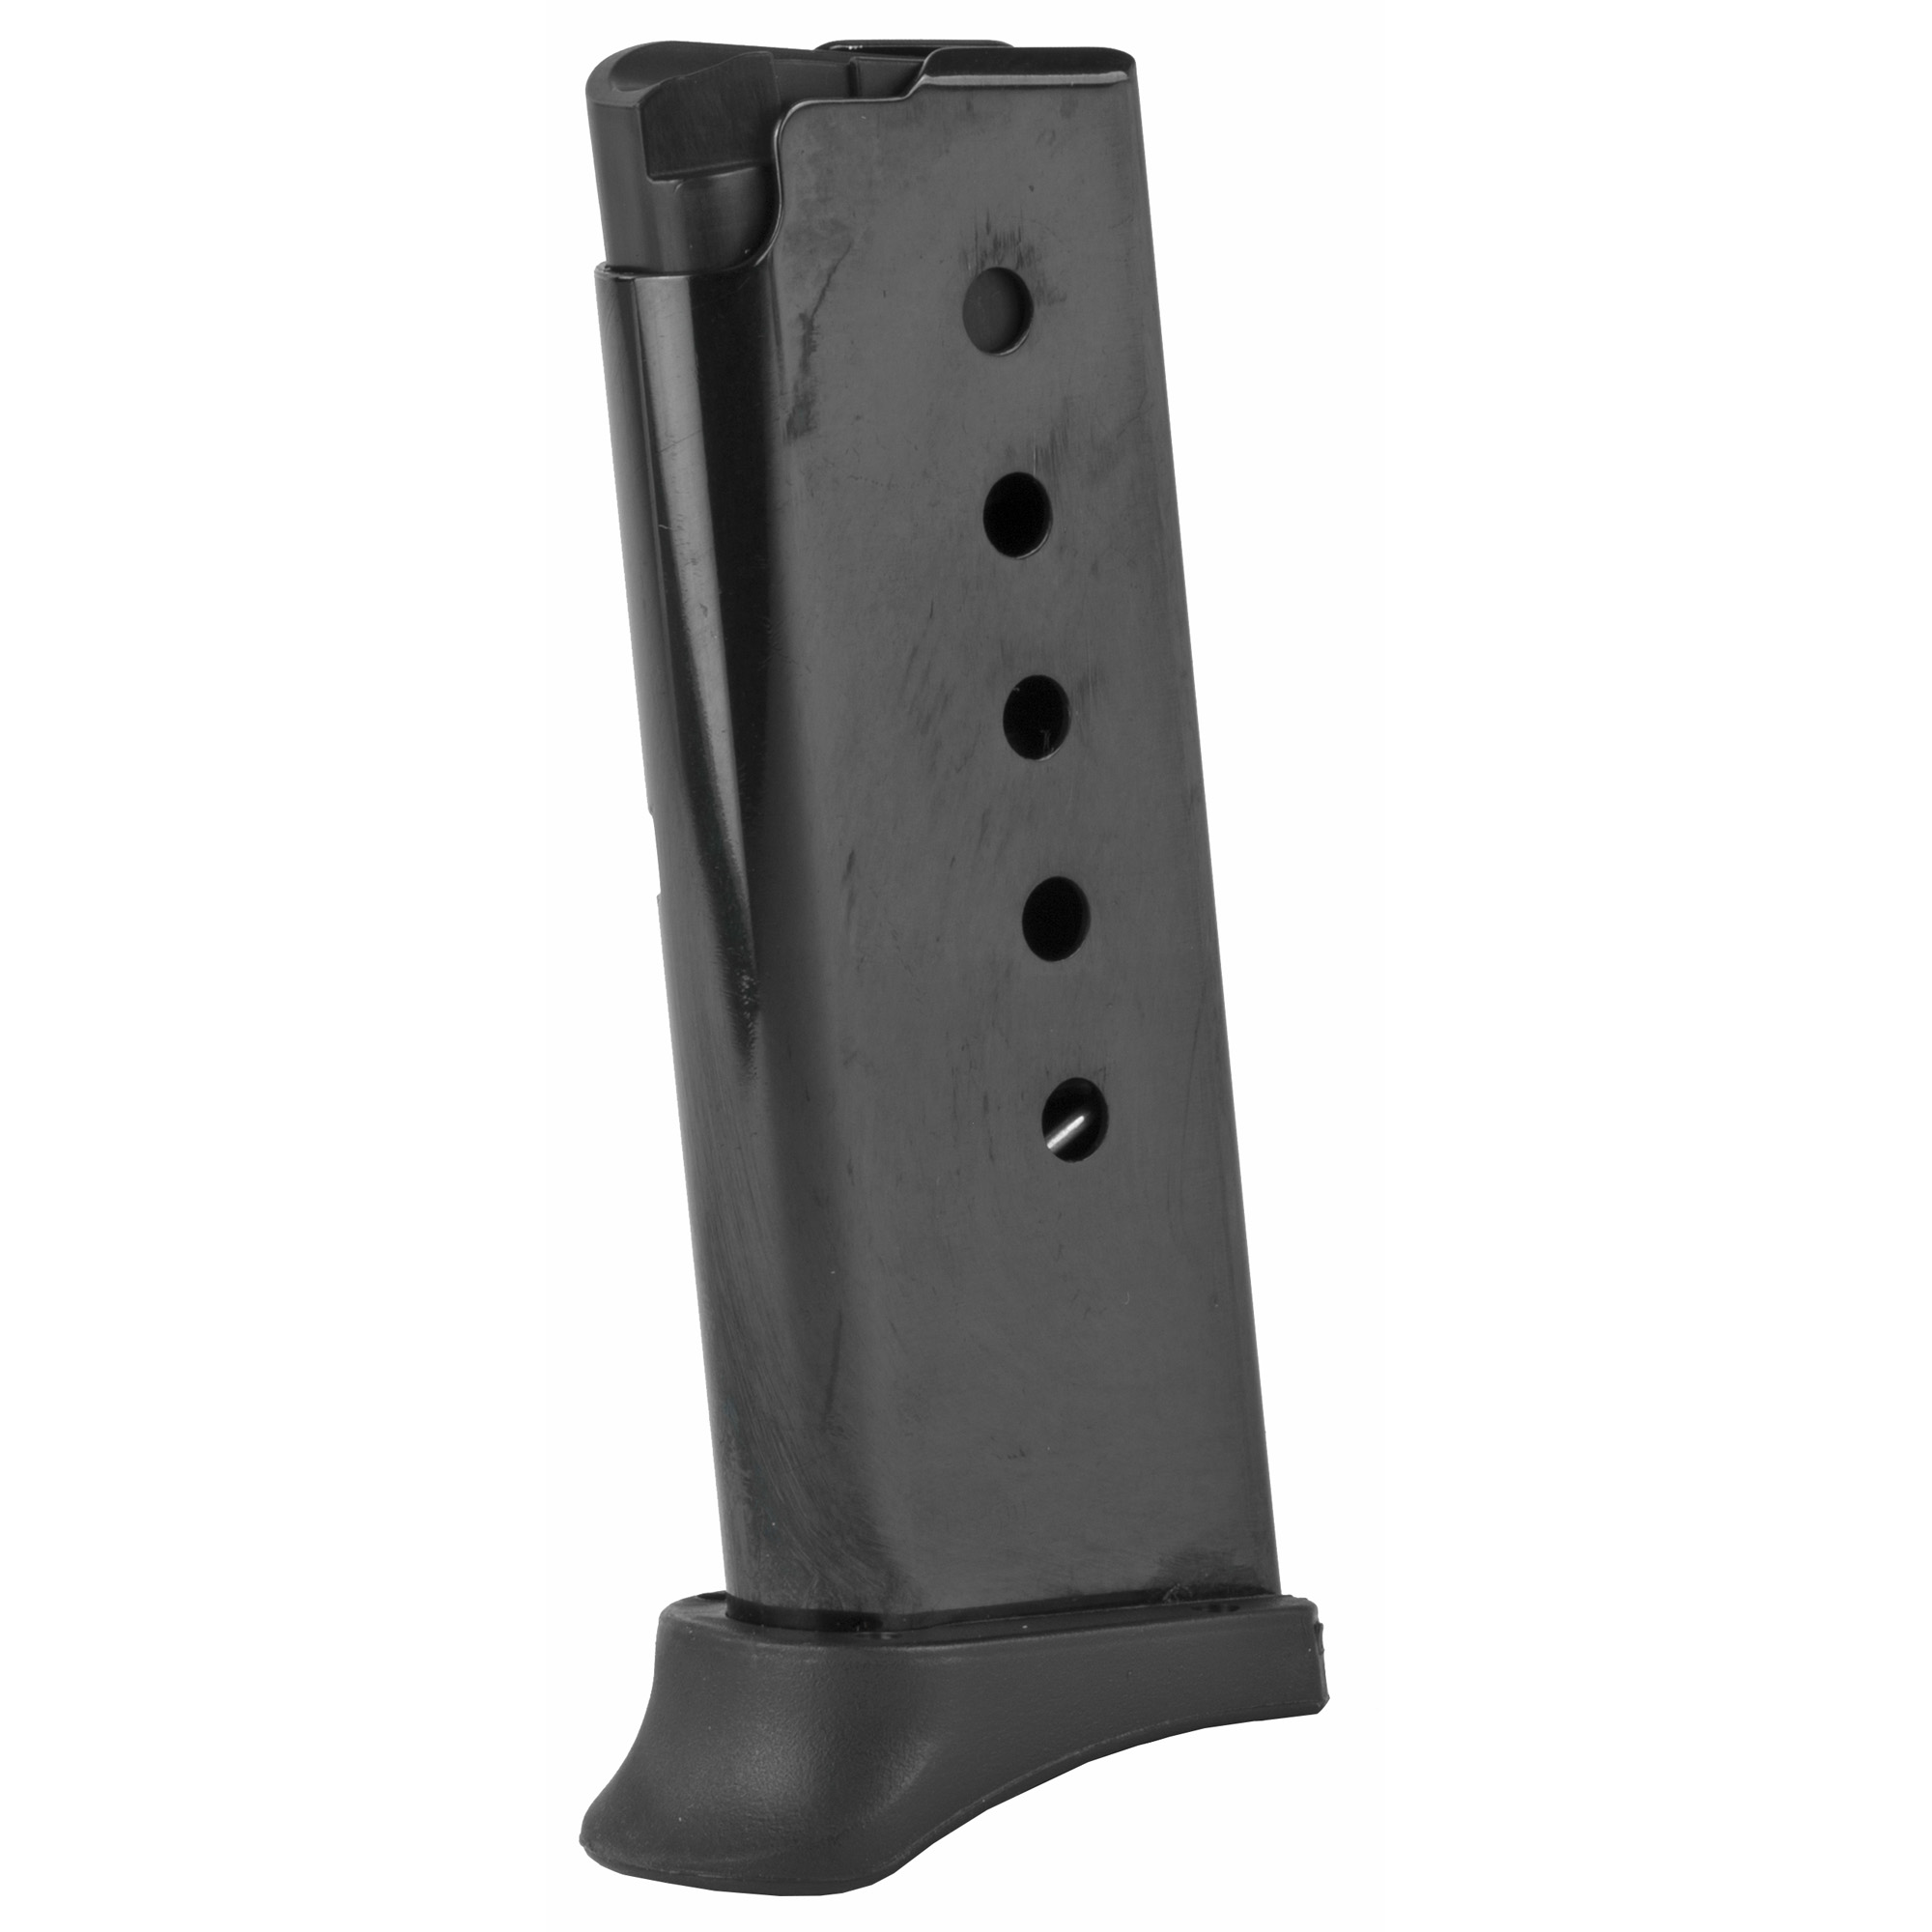 This magazine fits DB380 models and holds 6 rounds of .380 ACP ammunition. It features a metal alloy body and is made using the same manufacturing and materials as the original equipment magazines